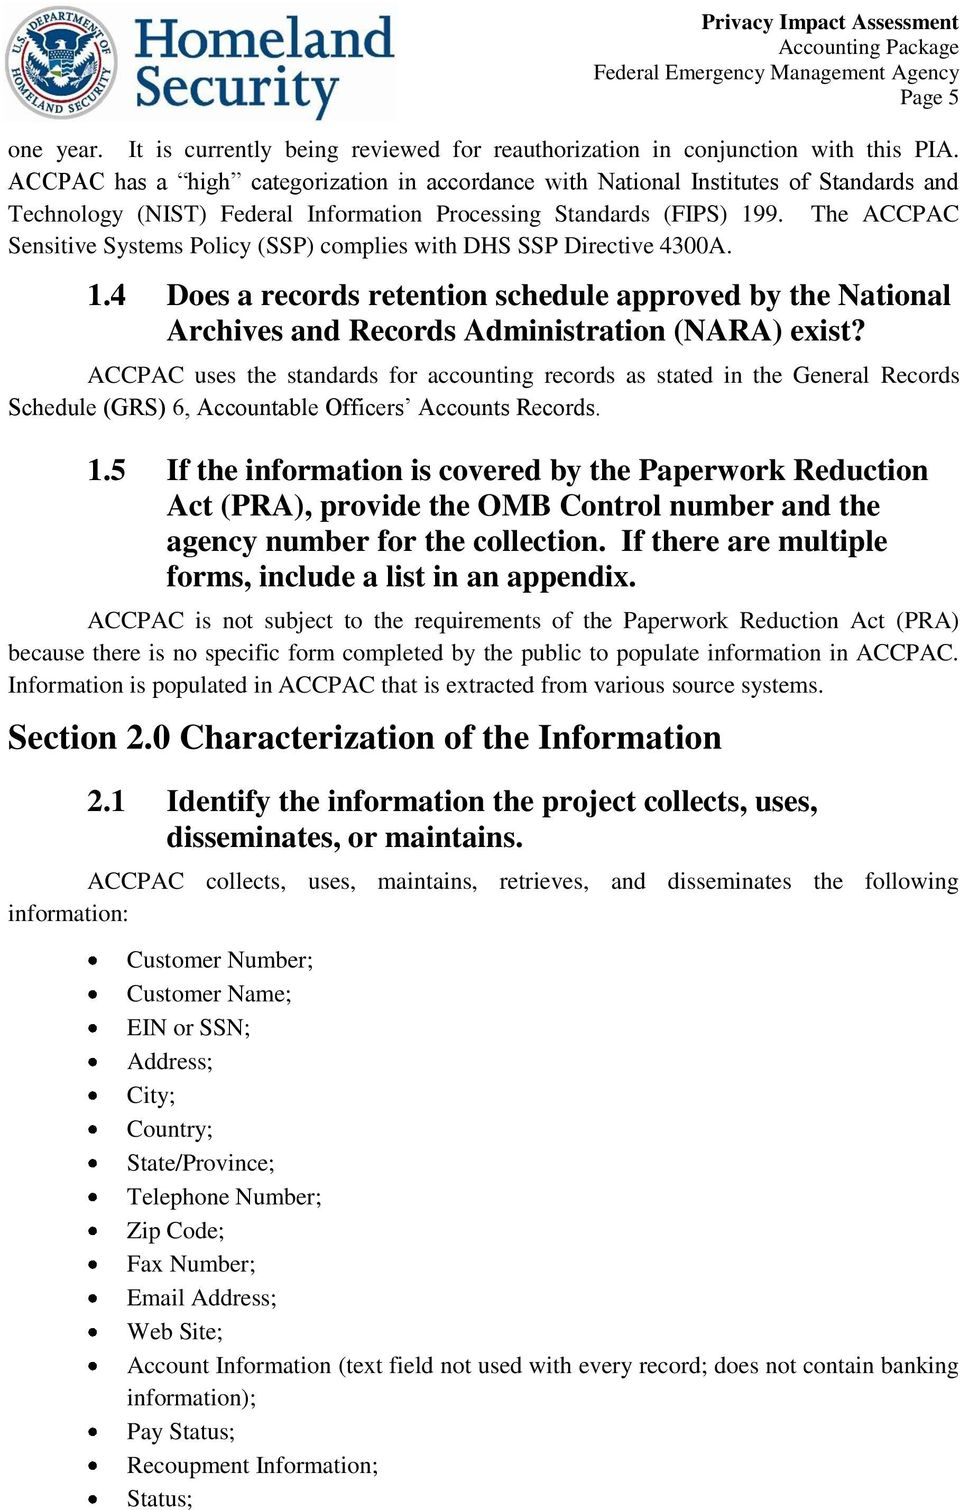 The ACCPAC Sensitive Systems Policy (SSP) complies with DHS SSP Directive 4300A. 1.4 Does a records retention schedule approved by the National Archives and Records Administration (NARA) exist?